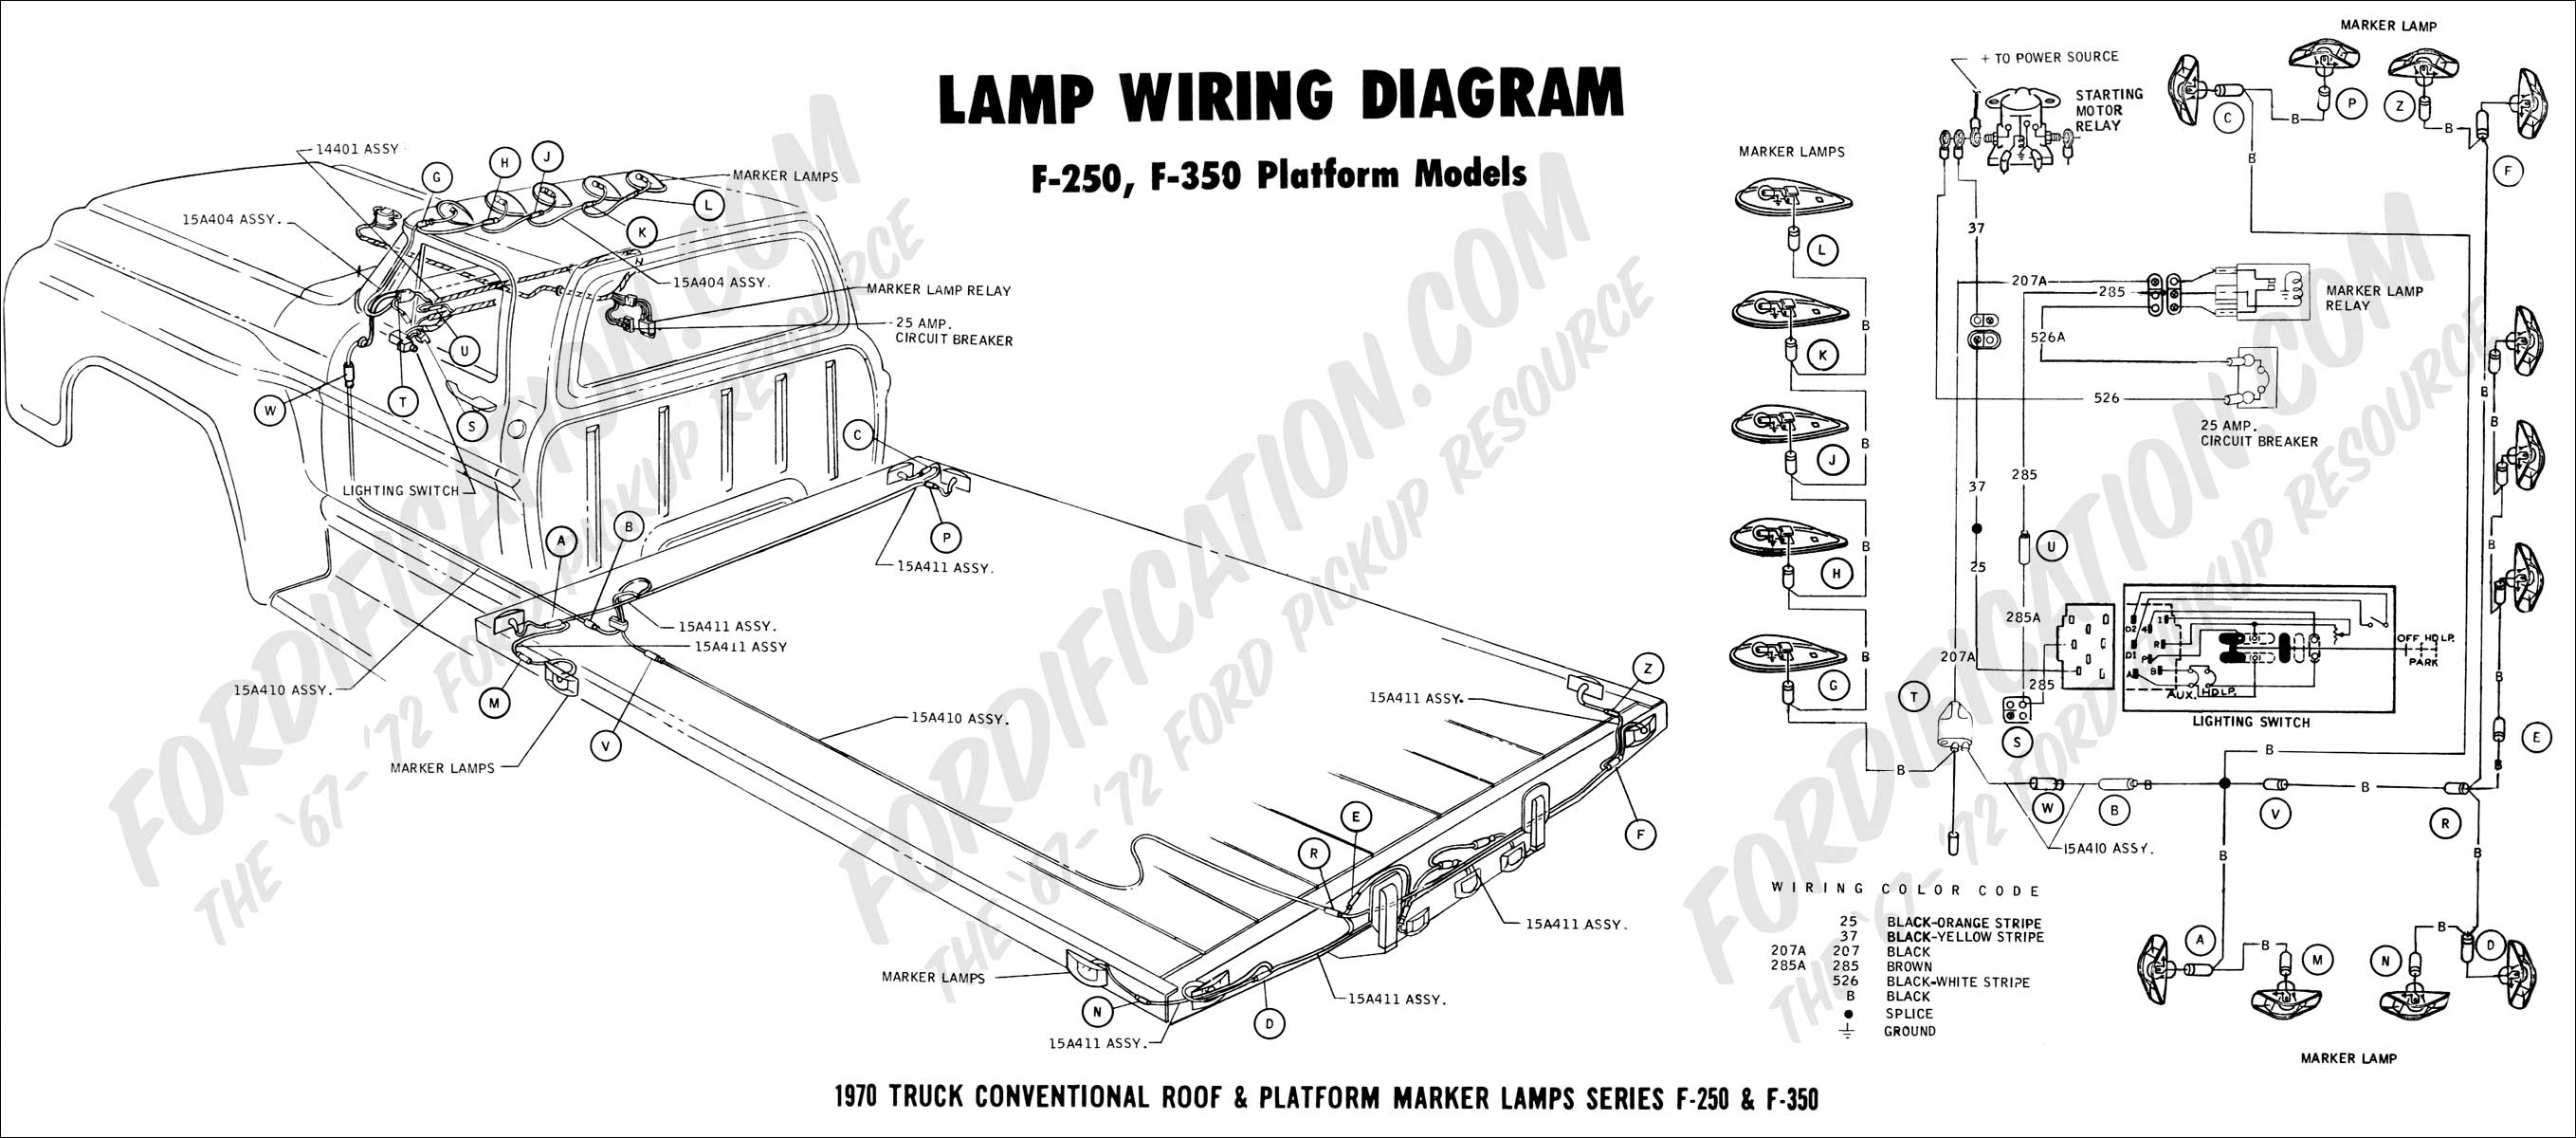 1986 Ford F800 Wiring Diagram Another Blog About For Toro Timecutter Mx 5050 F700 2007 F750